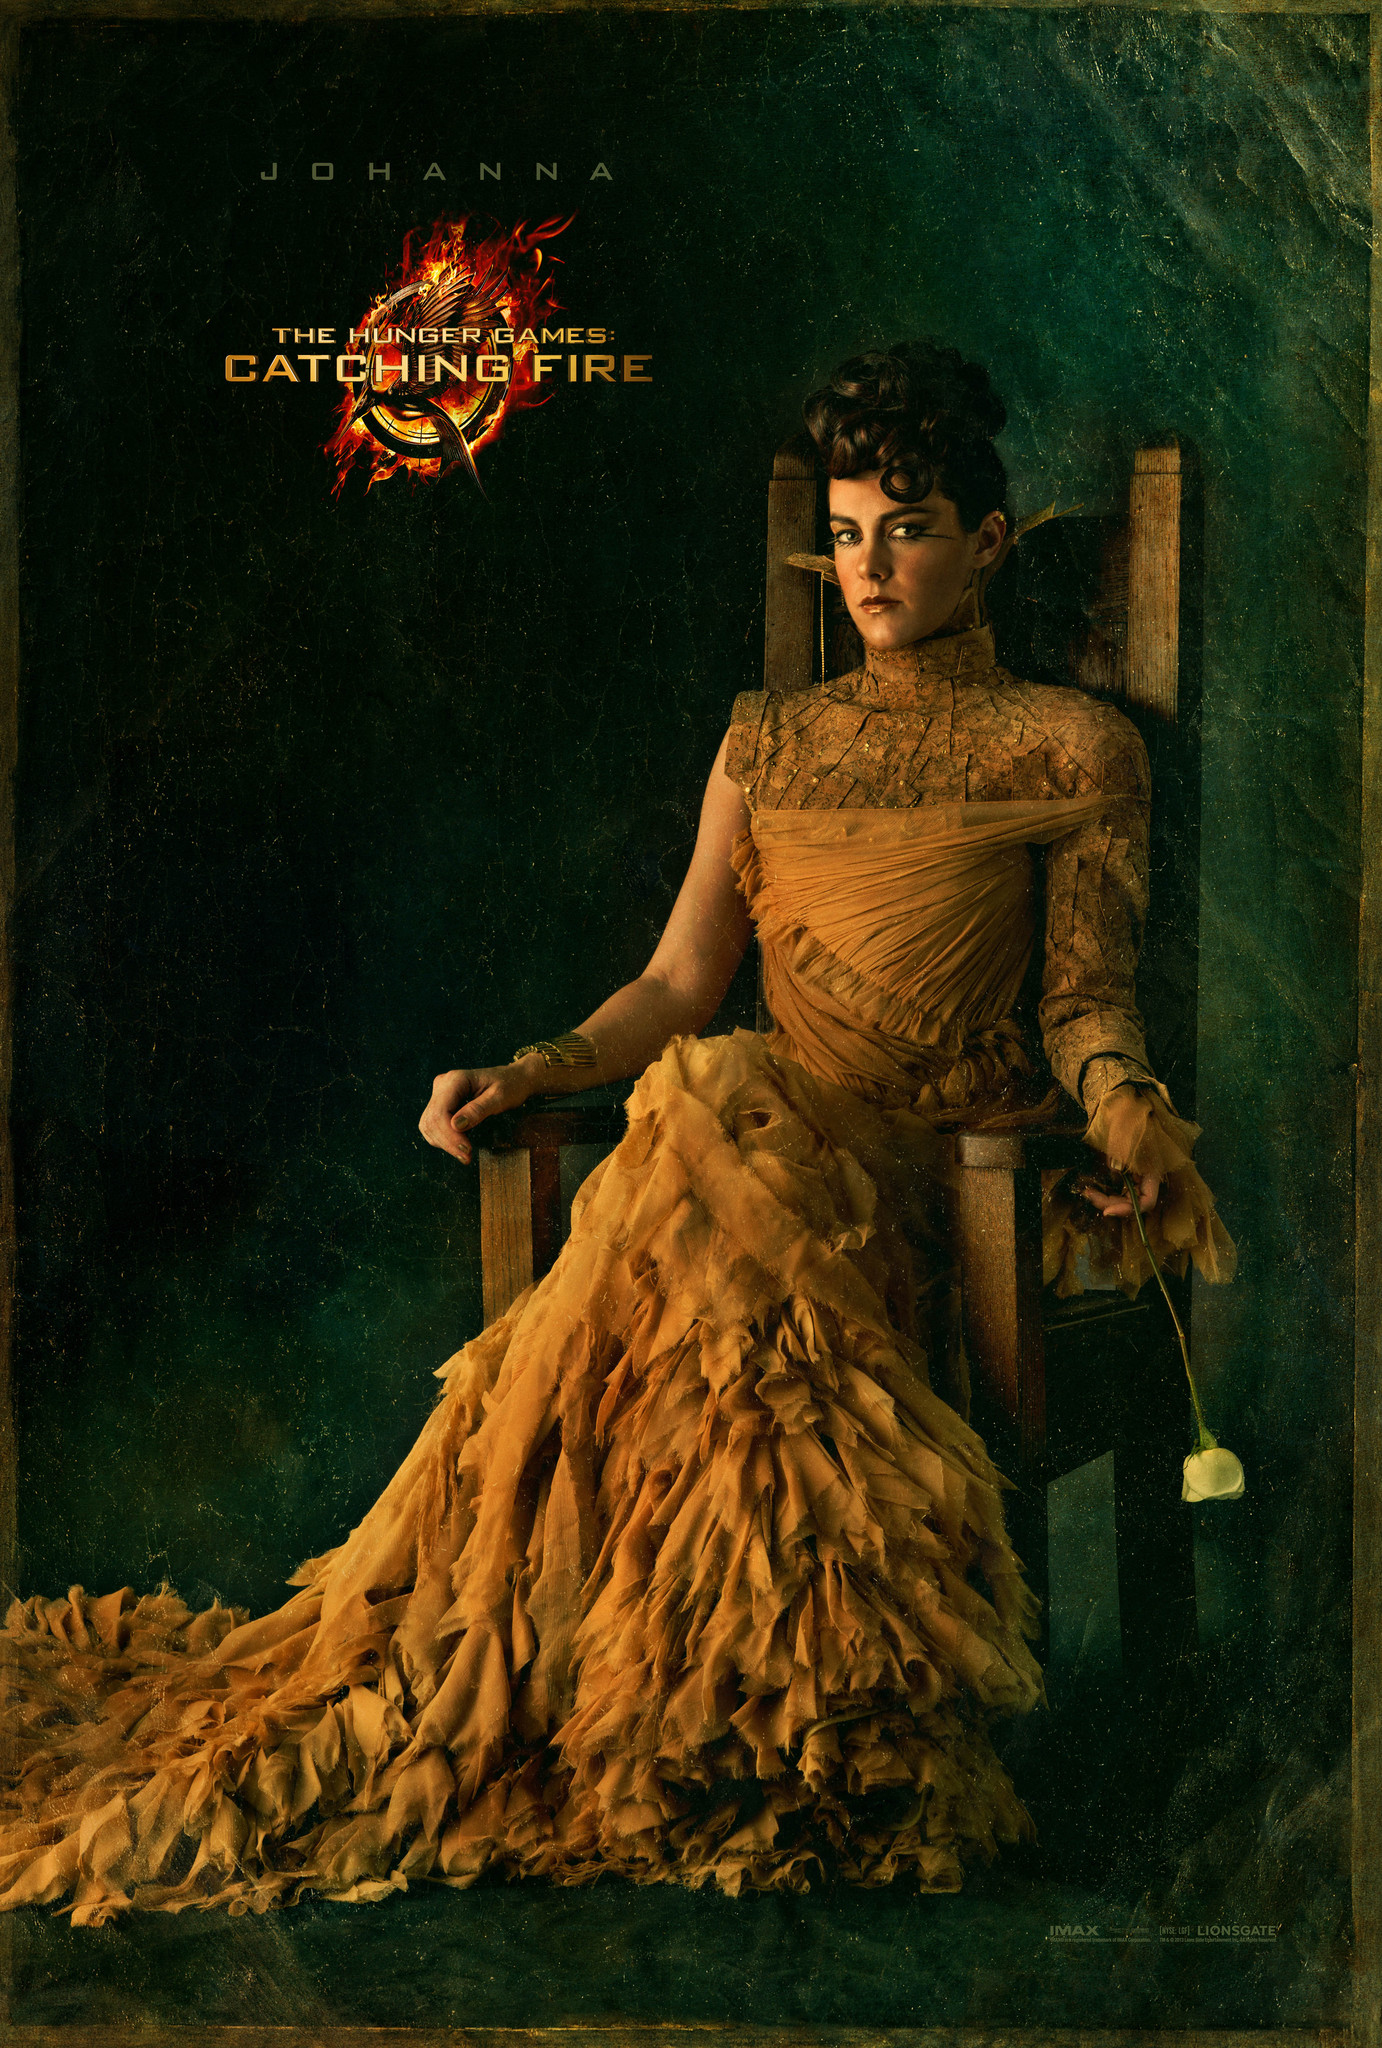 The Hunger Games: Catching Fire - Movie Poster #3 (Original)